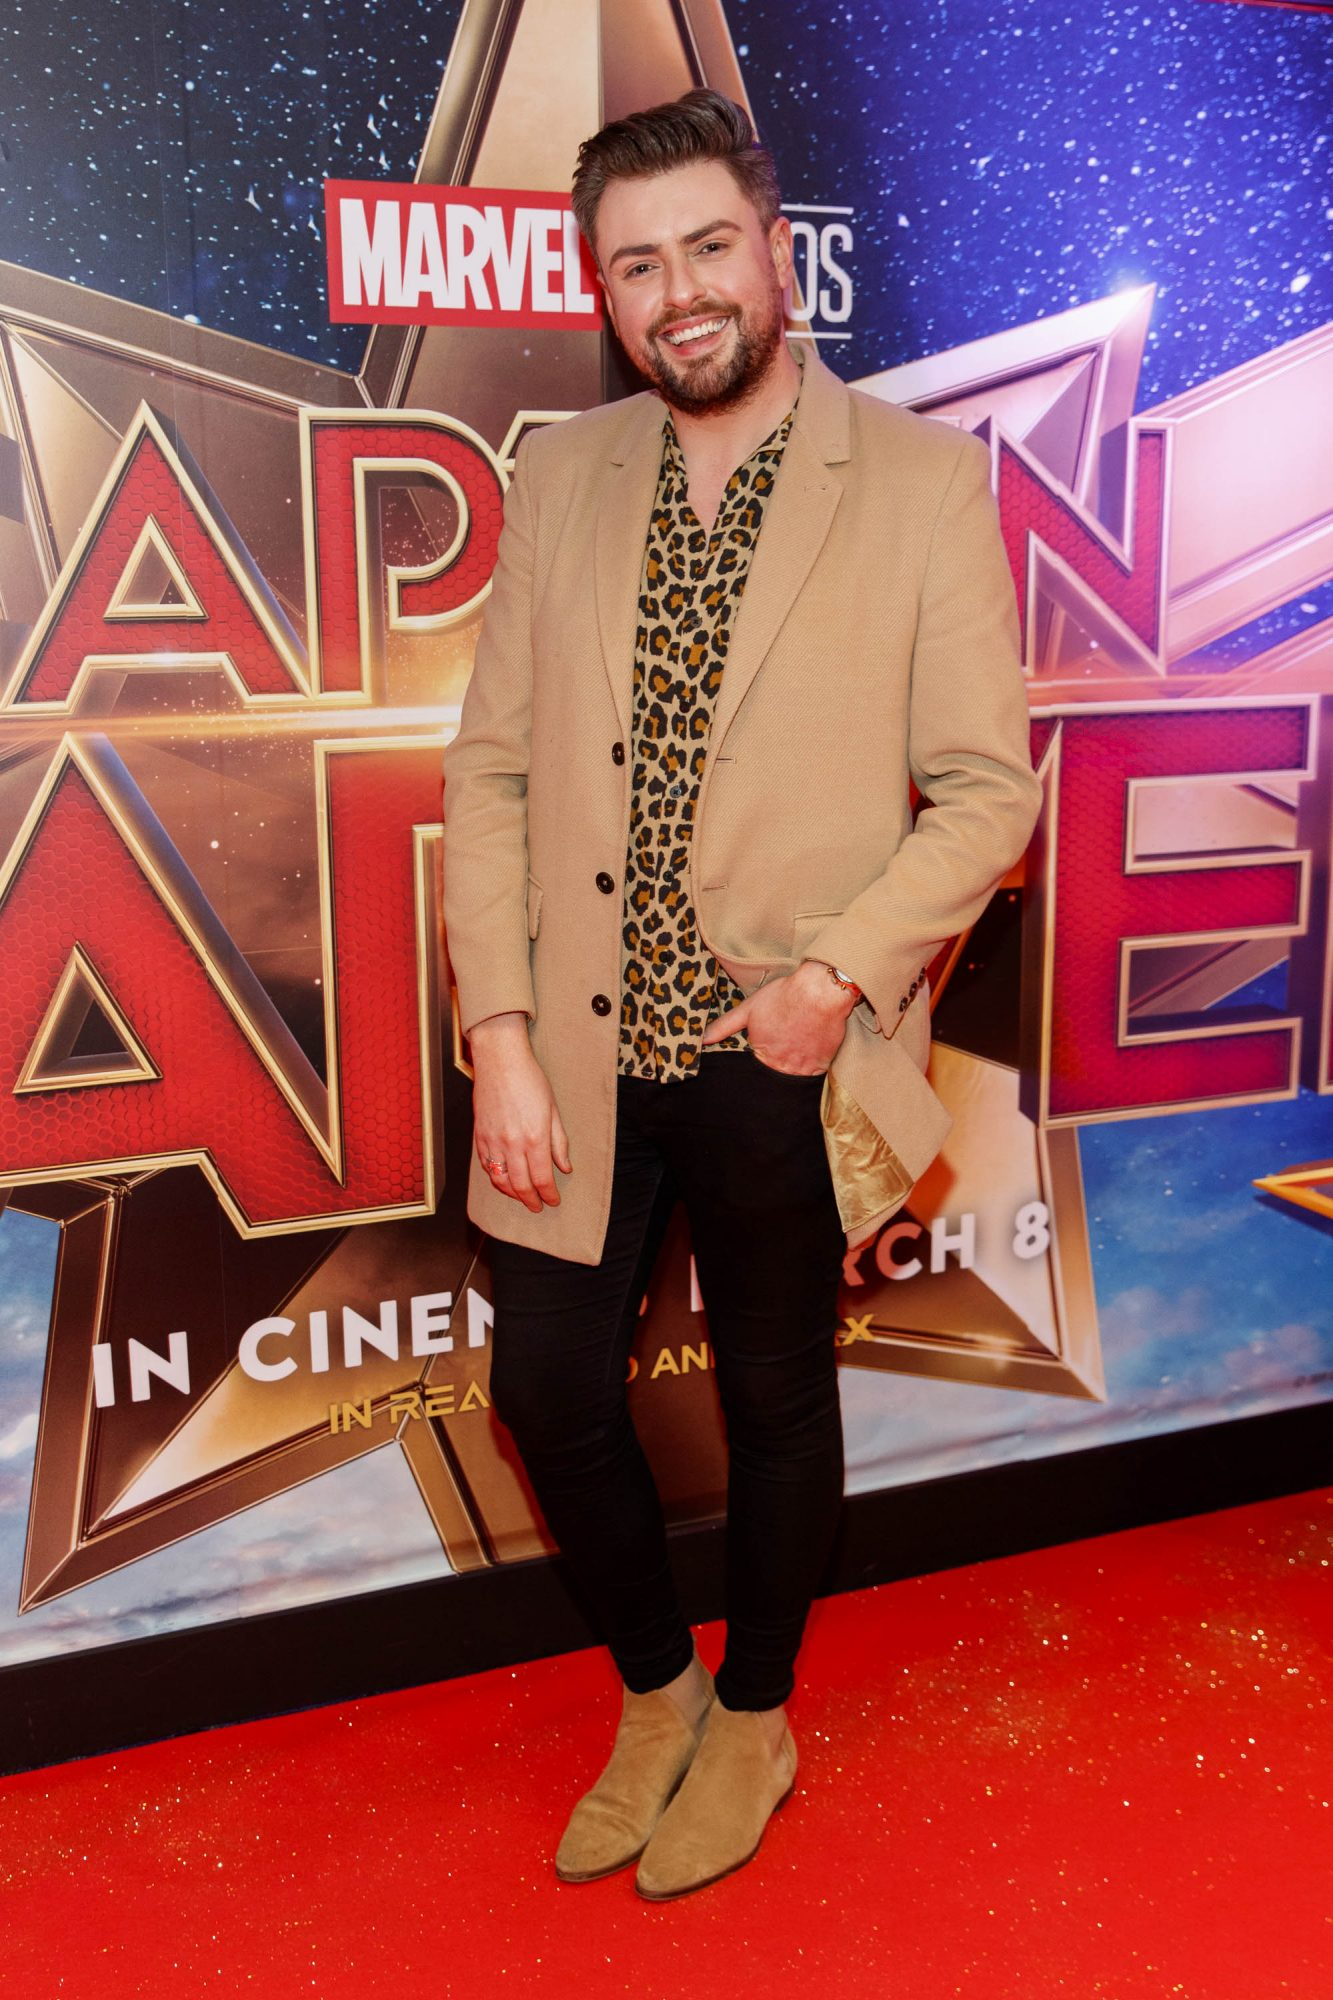 James Patrice pictured at a special preview screening of CAPTAIN MARVEL in Cineworld Dublin. Picture by: Andres Poveda